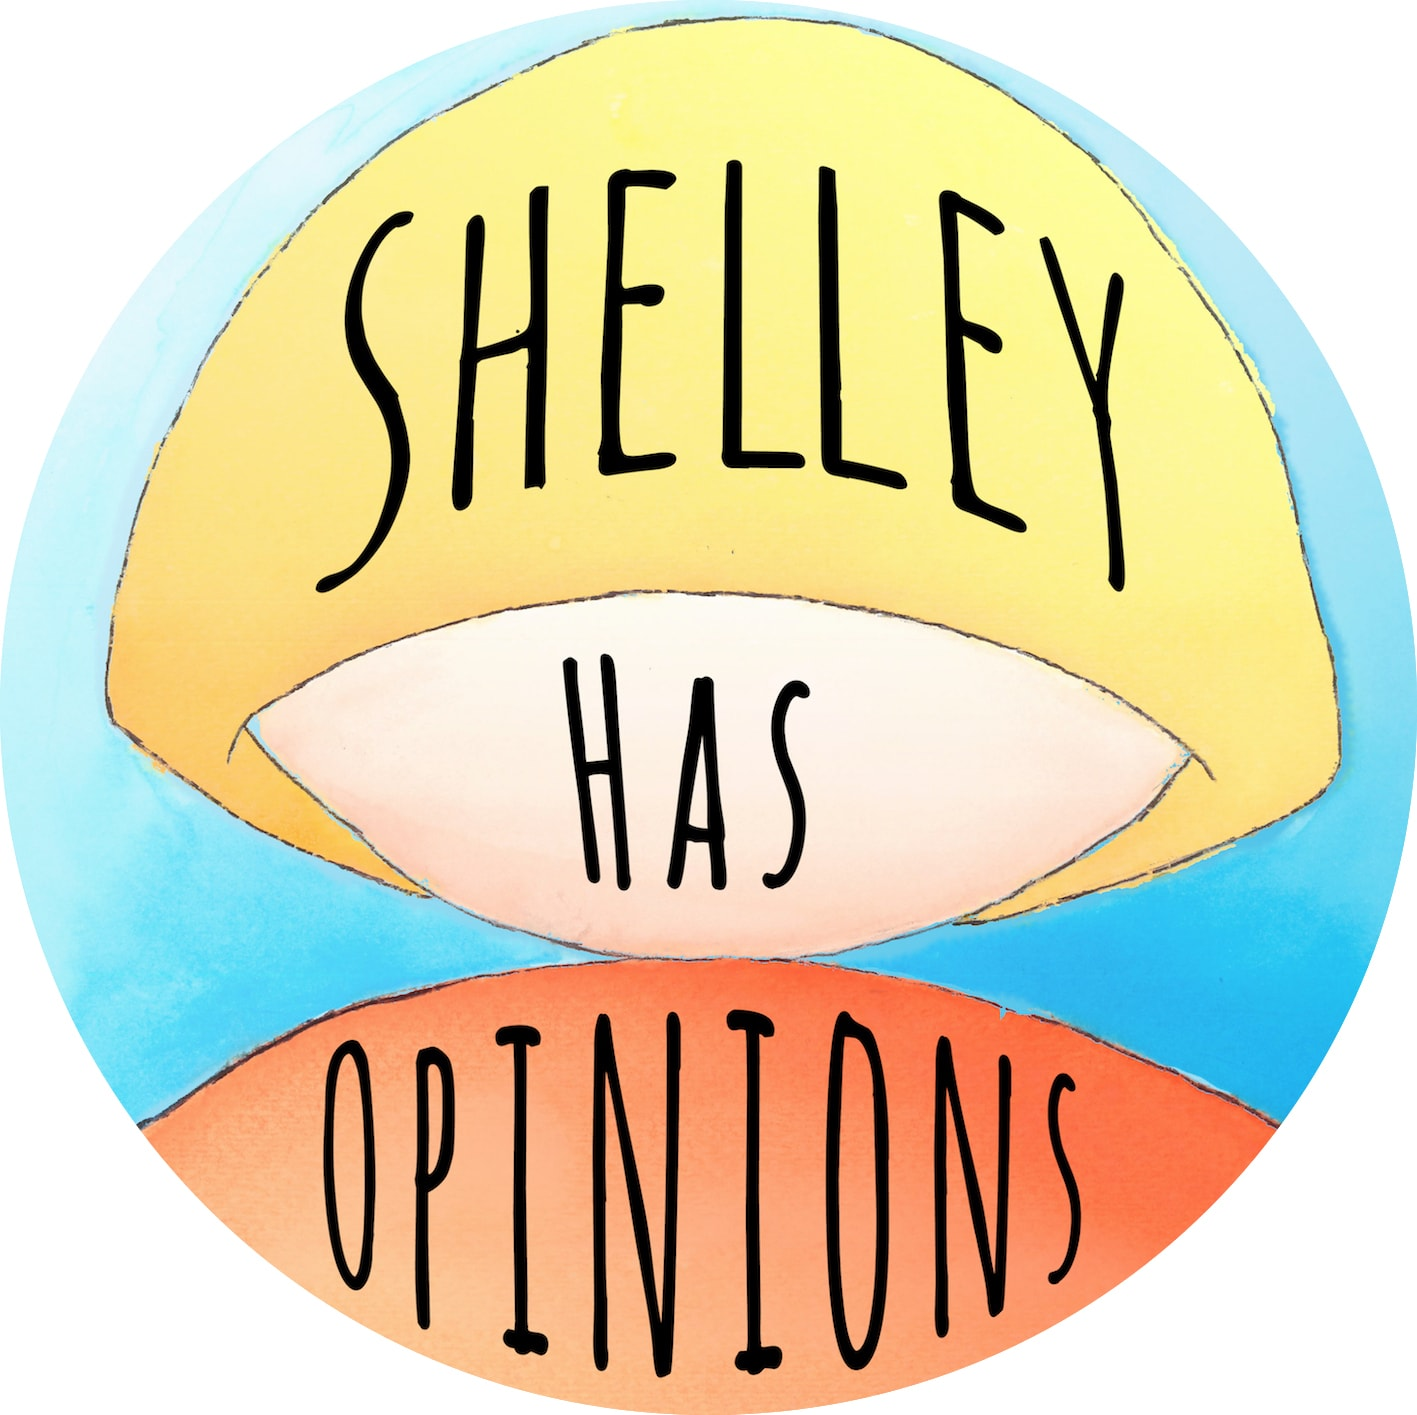 Shelley Has Opinions